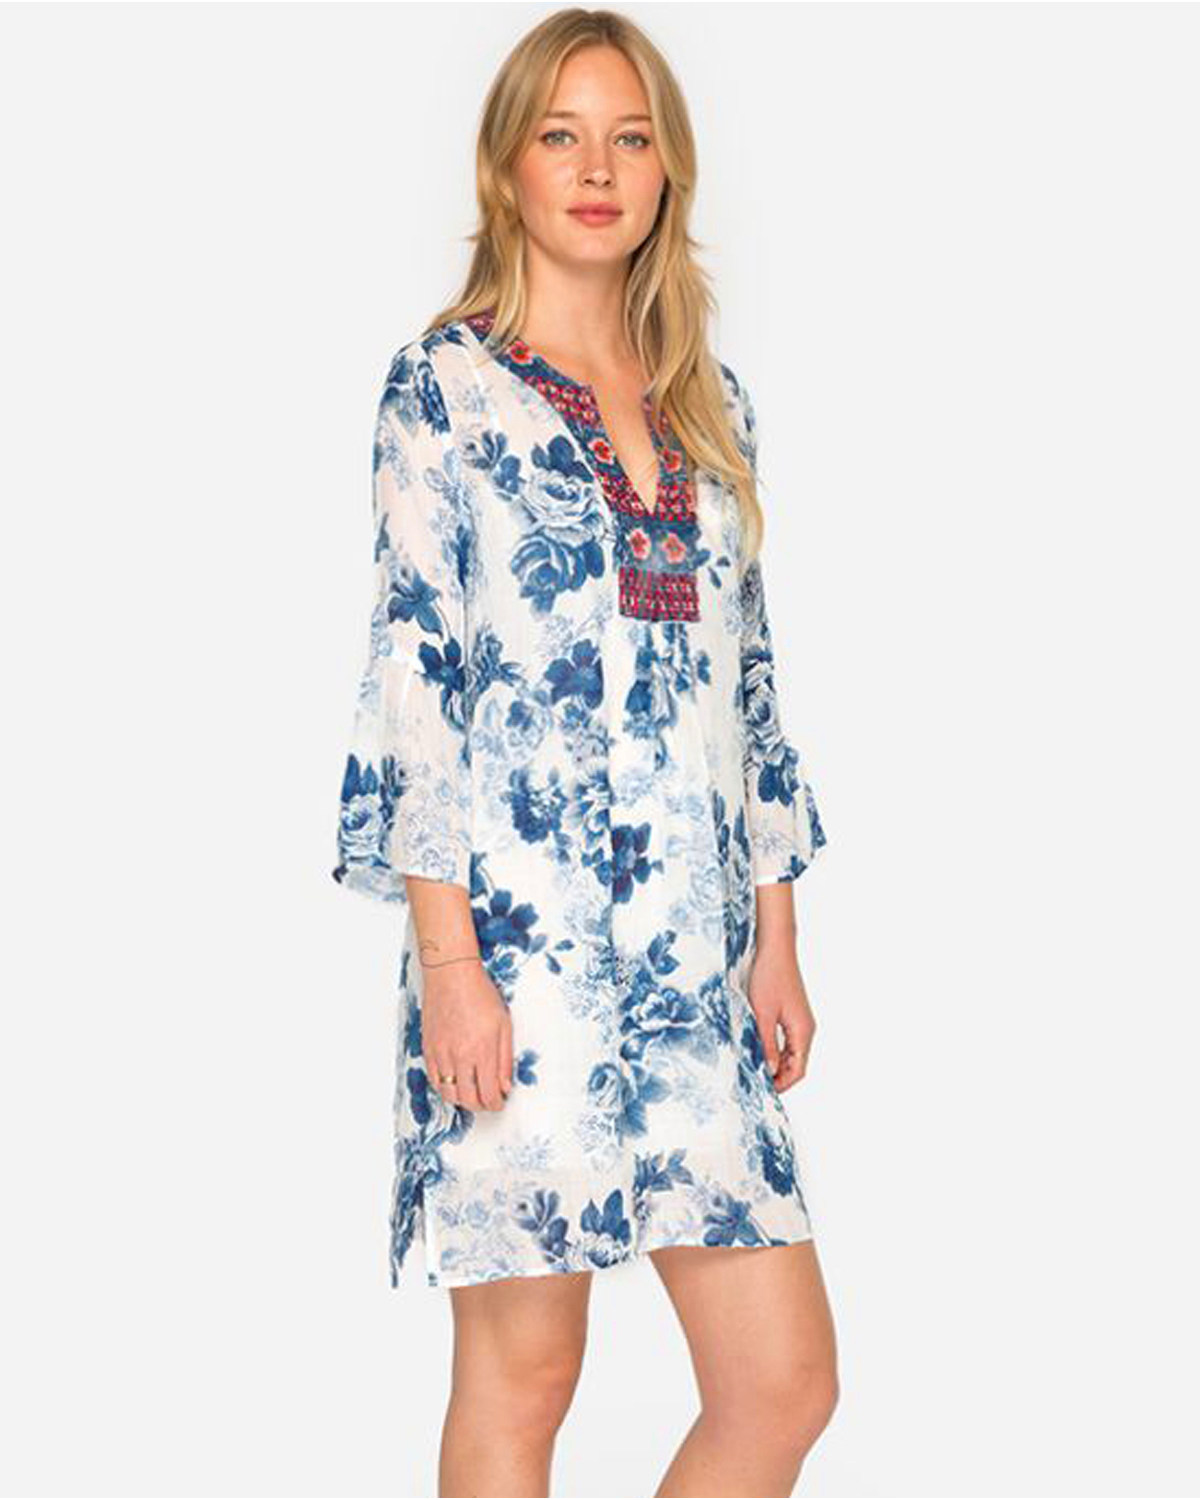 Johnny Was Women\'s Blue Flare Sleeve Tunic Dress - Plus Size | Boot Barn